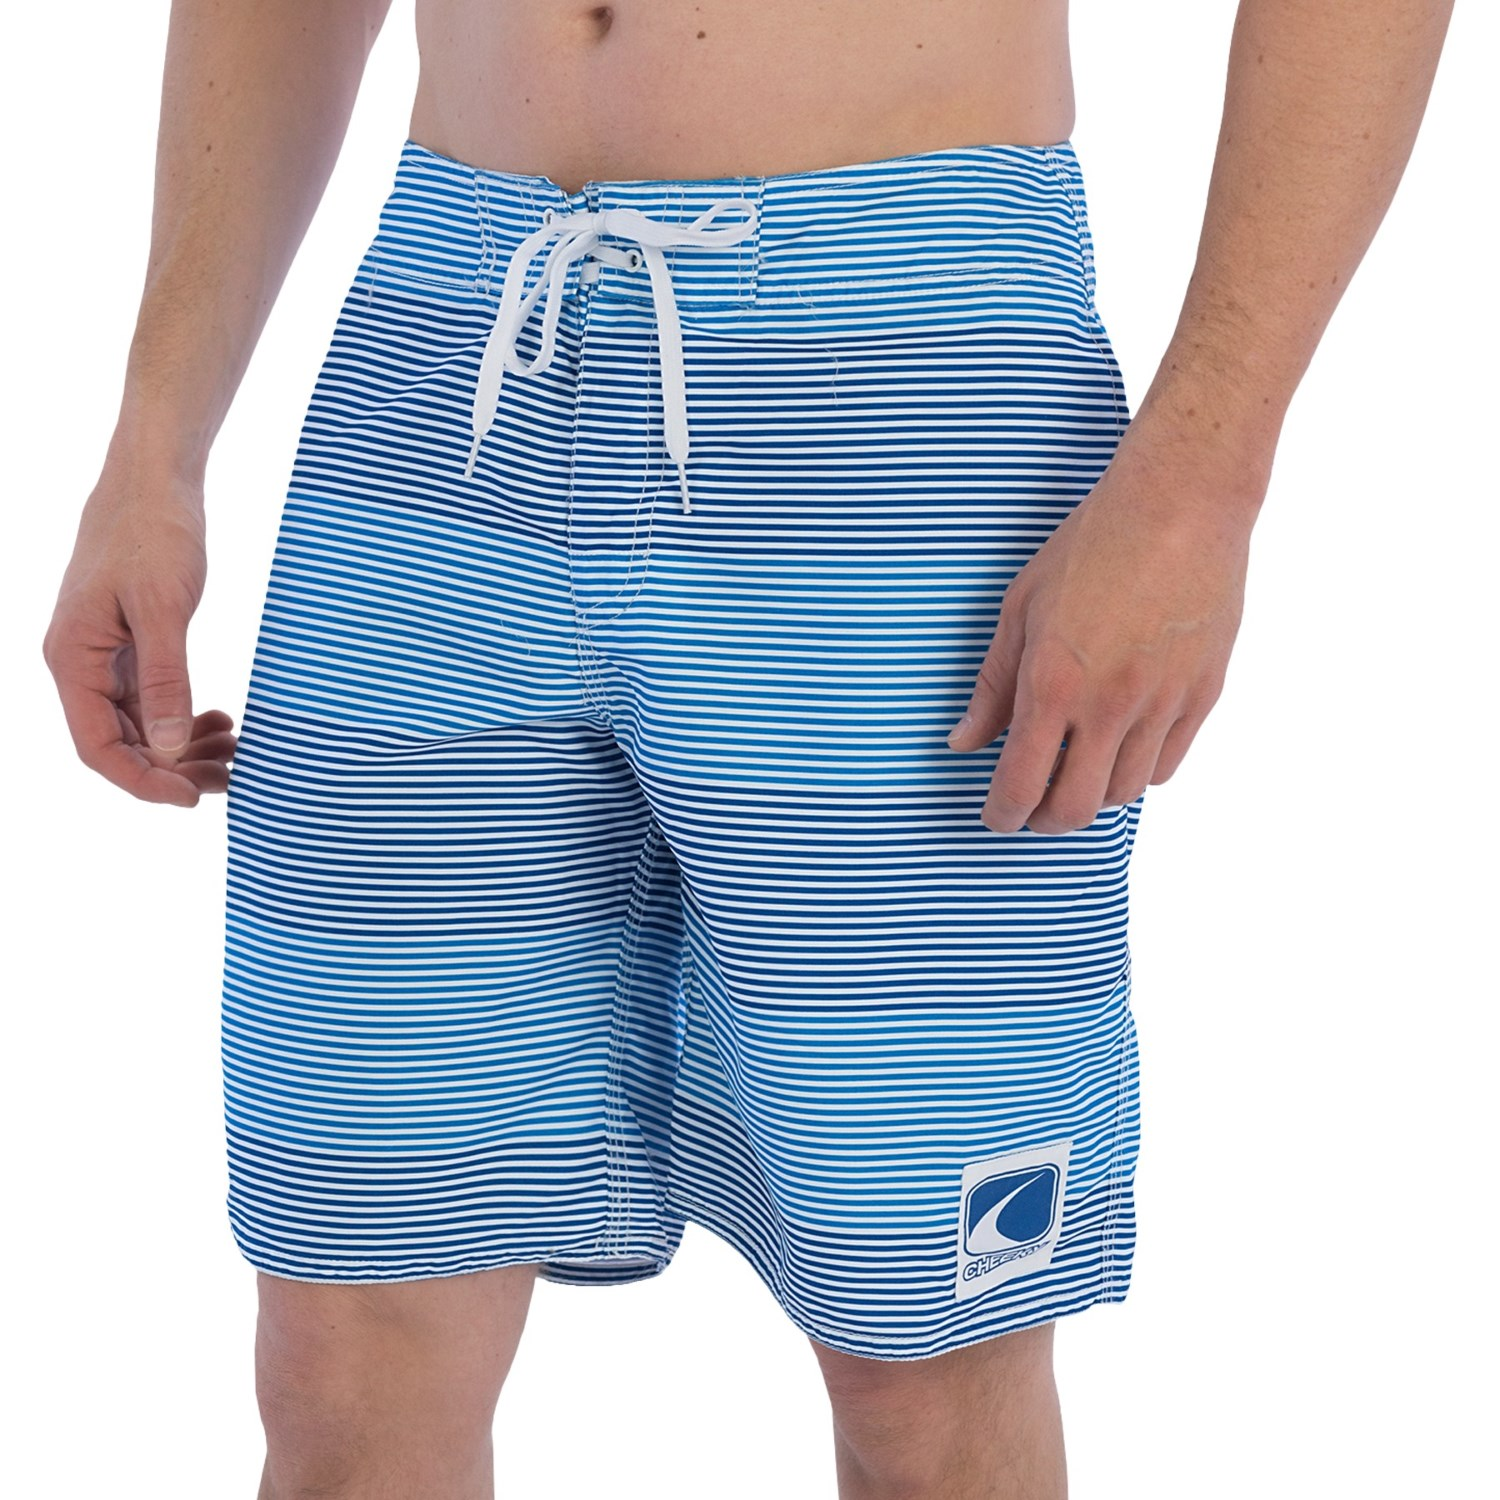 Cheeky fly fishing blitz wading boardshorts for men for Cheeky fly fishing